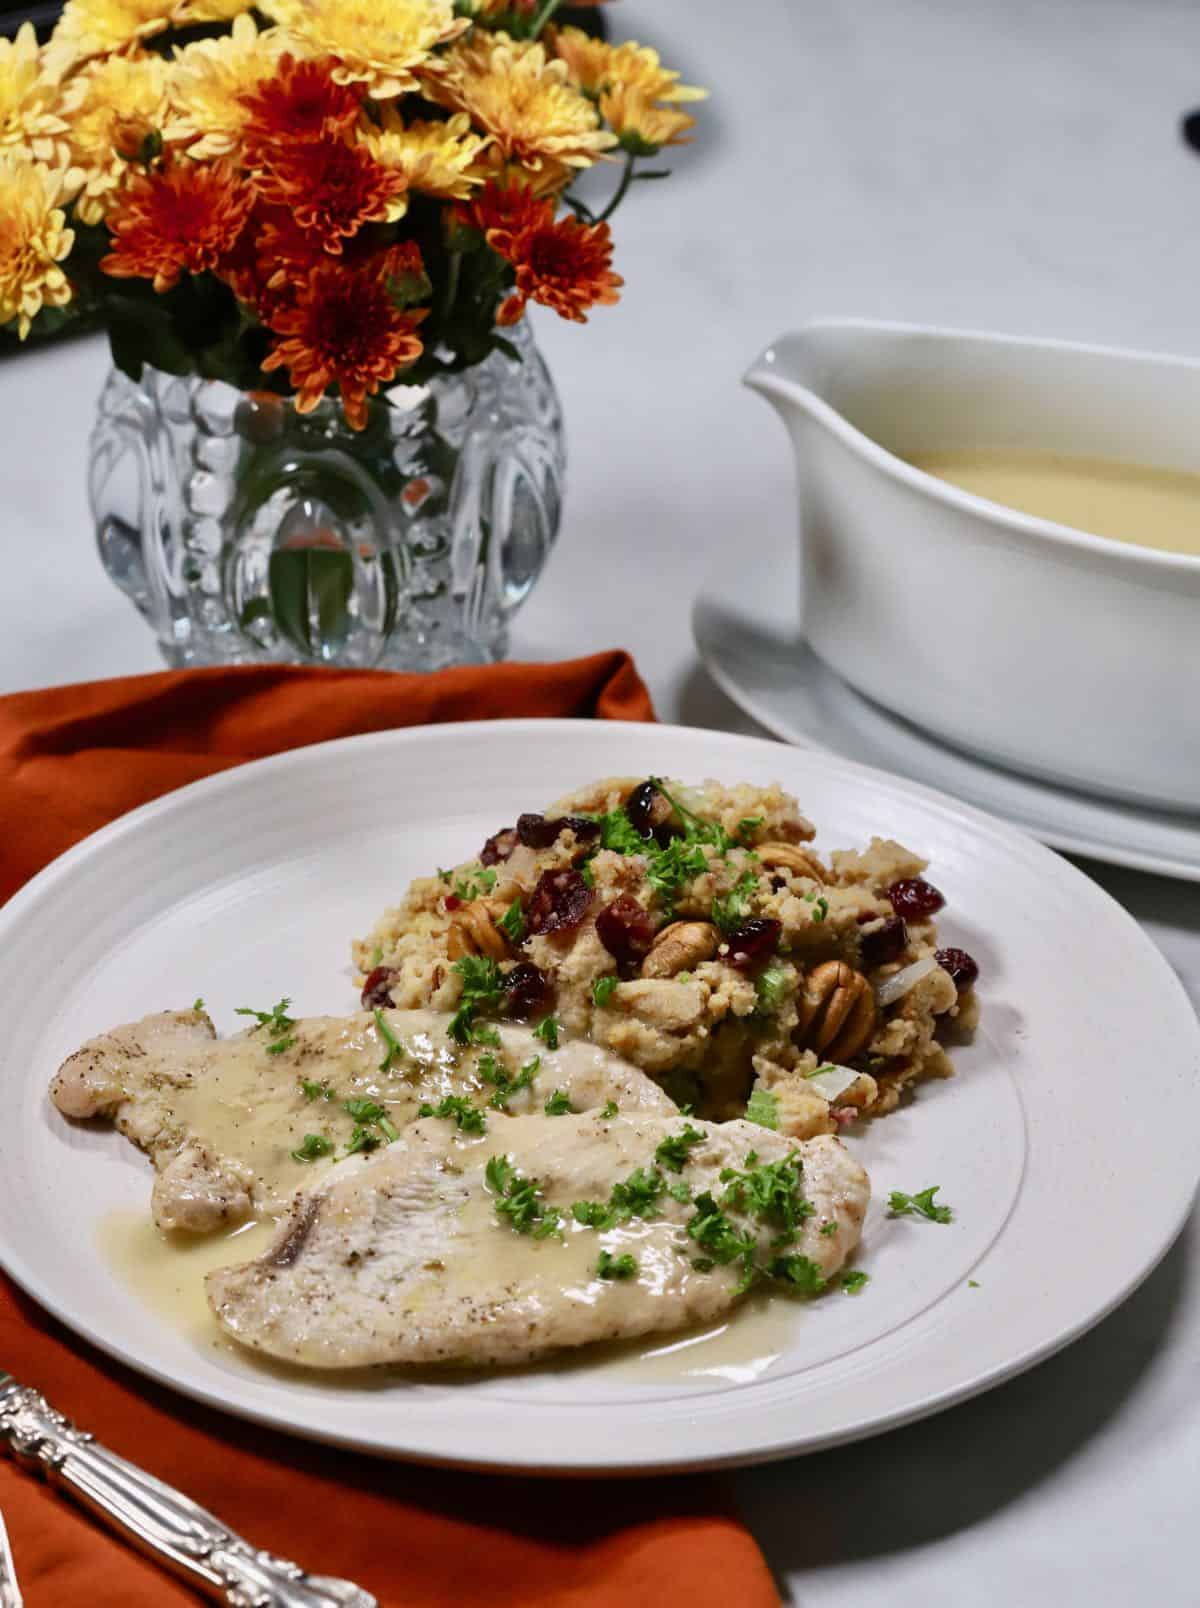 Turkey cutlets, gravy and dressing on a white plate.